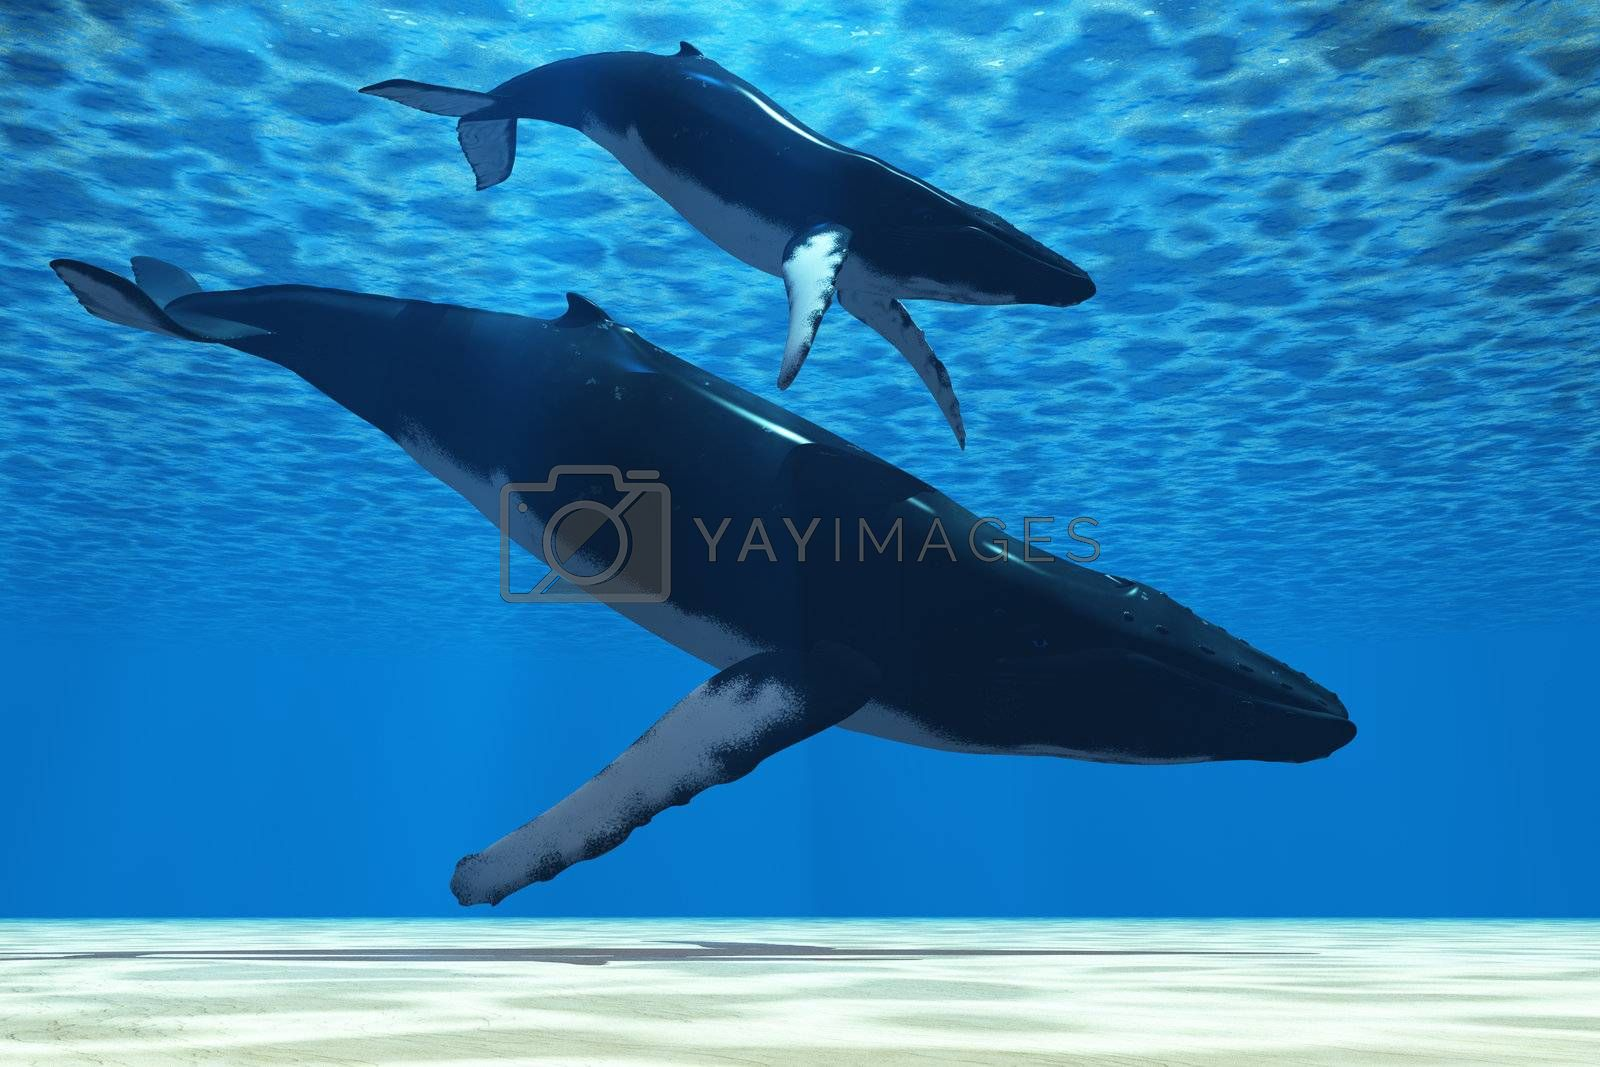 A Humpback mother whale escorts her calf in the shallows of the ocean.